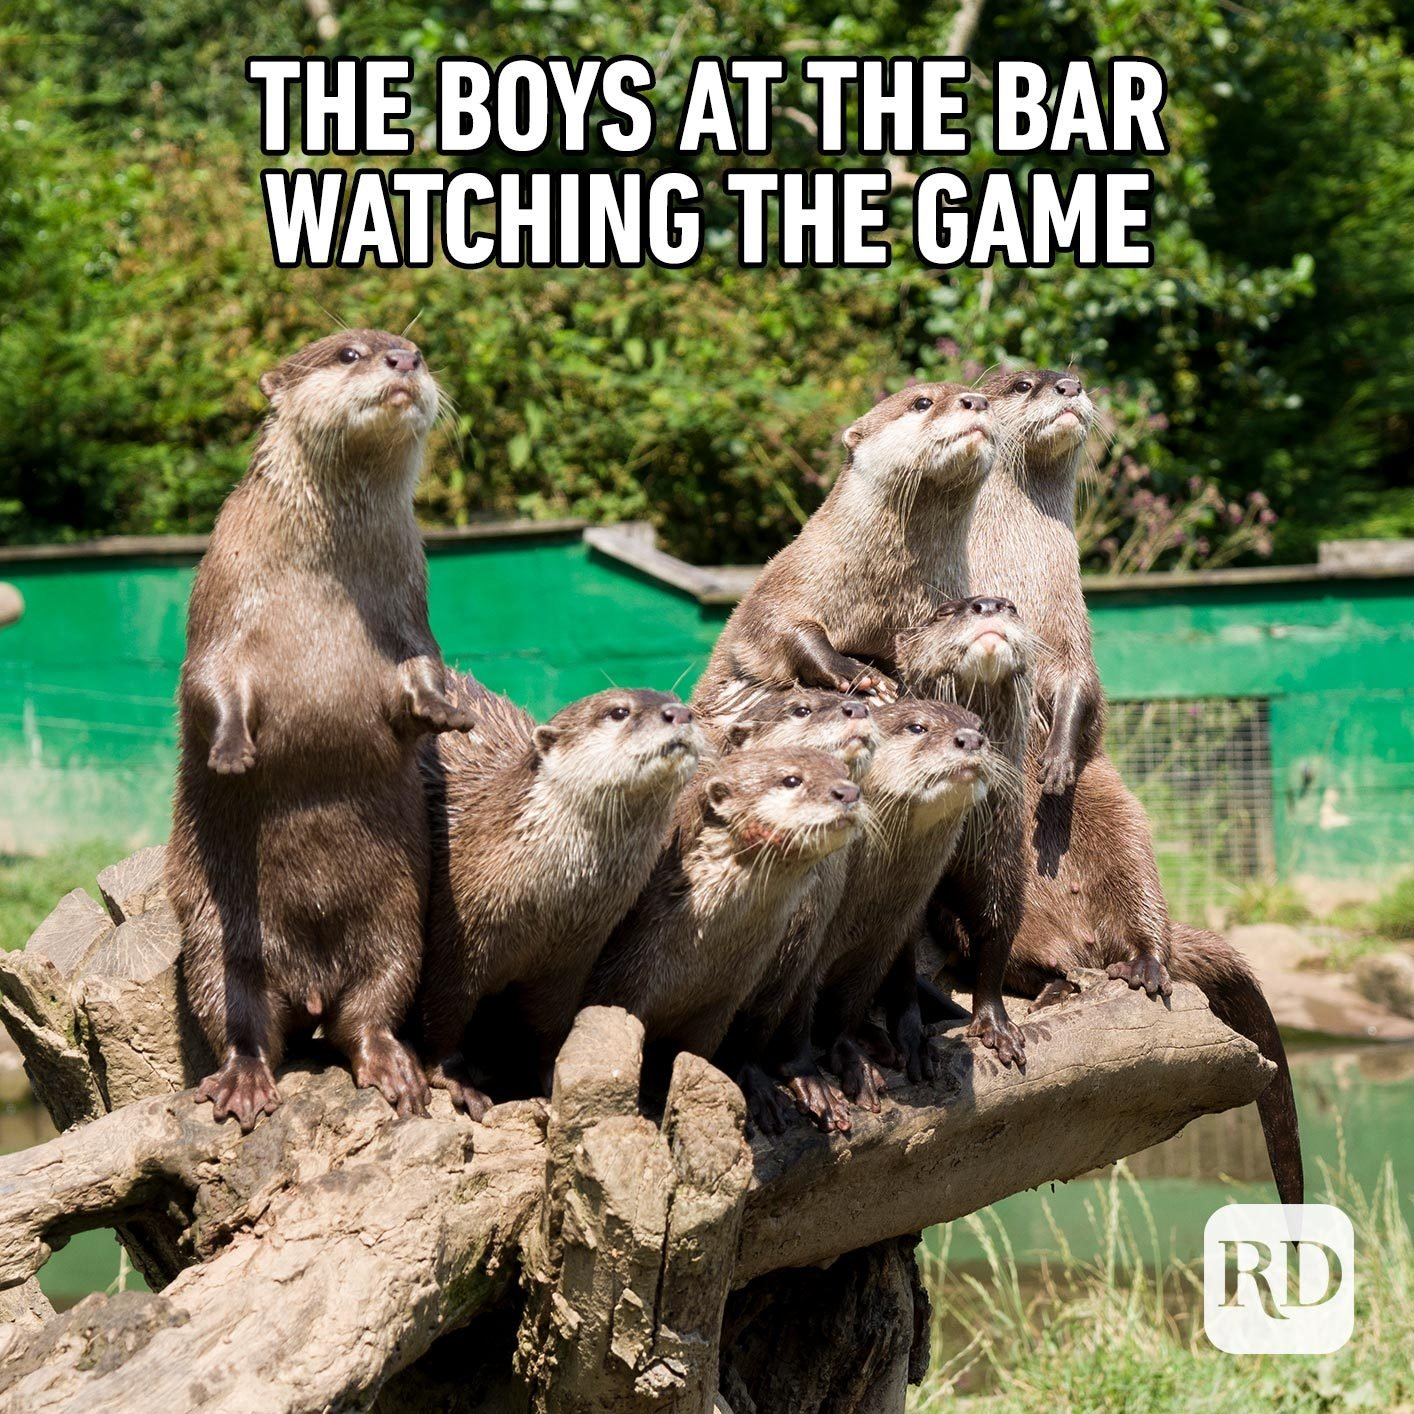 Beavers on a log. Meme text: The boys at the bar watching the game